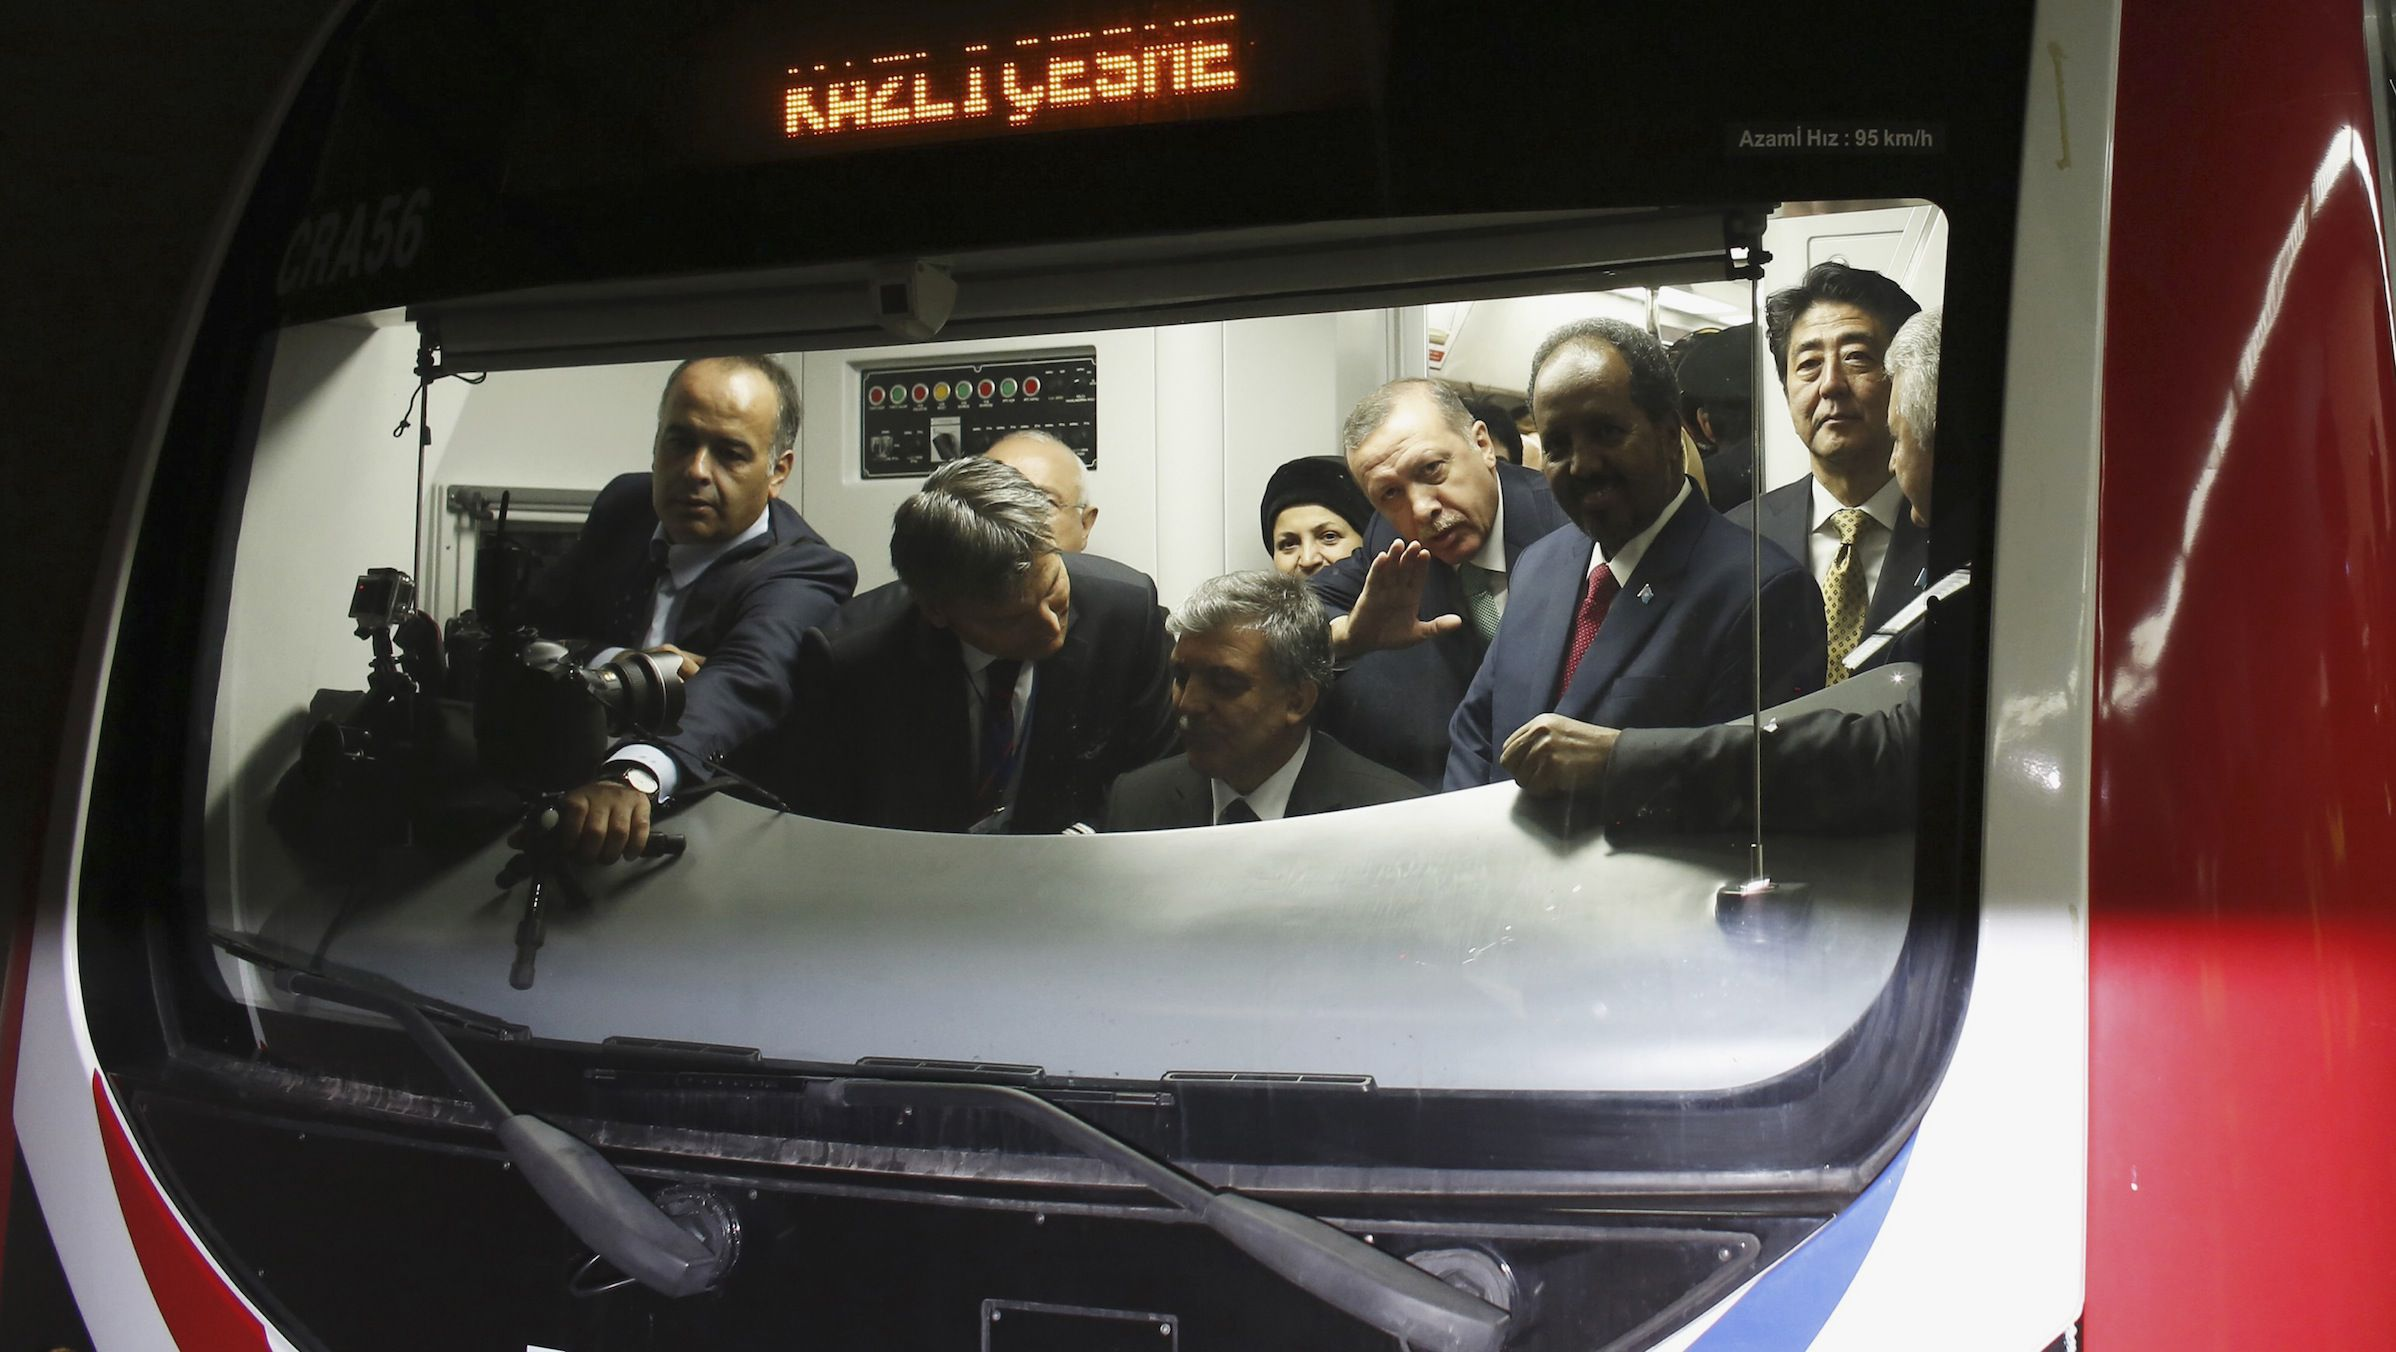 Japanese Prime Minister Shinzo Abe (R), Turkey's Prime Minister Tayyip Erdogan (3rd R) and President of Somalia Hassan Sheikh Mohamud (2nd R) stand around Turkey's President Abdullah Gul (seated) as he rides the ceremonial service of a train during the opening ceremony of Marmaray, a subway links Europe with Asia some 60 metres below the Bosphorus Strait, in Istanbul October 29, 2013. Turkey opened the world's first underwater rail link between two continents on Tuesday, connecting Asia and Europe and allowing PM Erdogan to realise a project dreamt up by Ottoman sultans more than a century ago.   REUTERS/Murad Sezer (TURKEY - Tags: POLITICS TRANSPORT BUSINESS TPX IMAGES OF THE DAY) - RTX14SU1